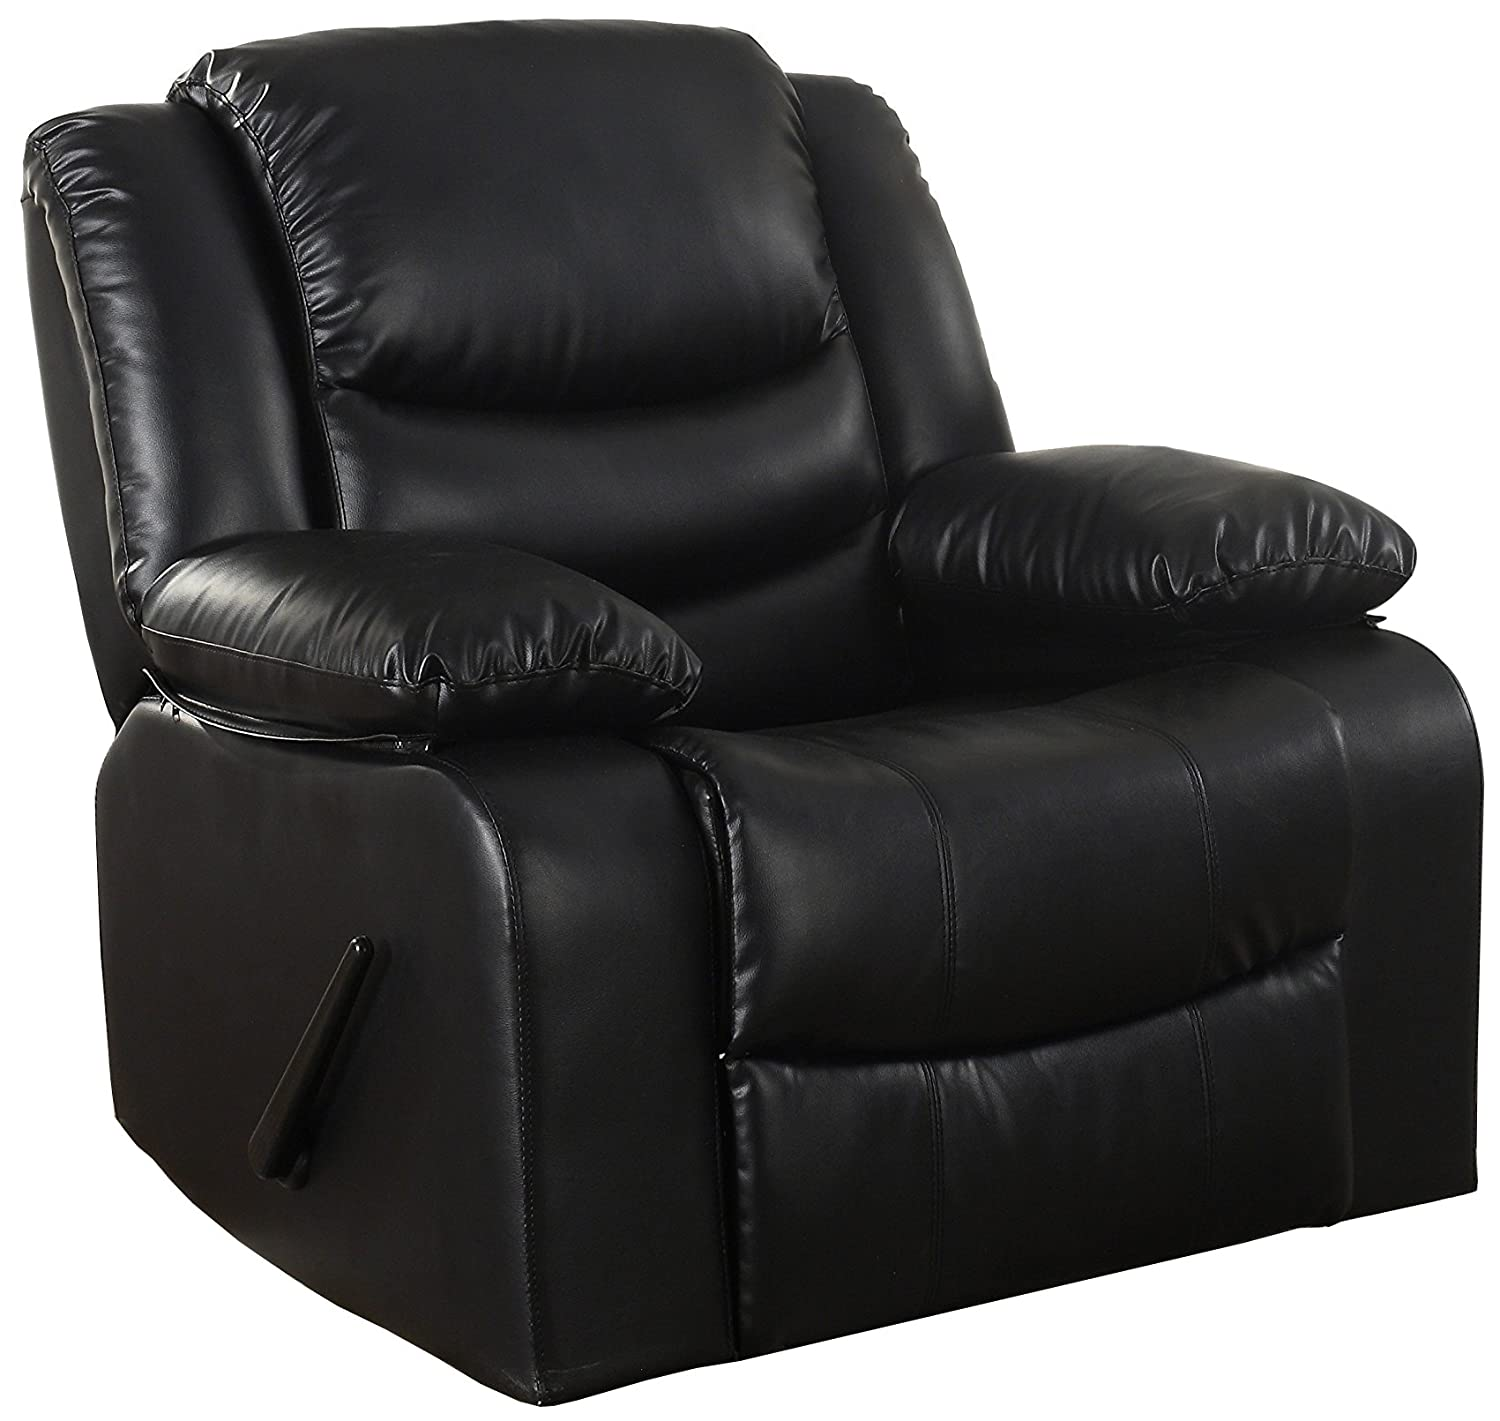 Best Recliner Reviews and Buying Guide 7